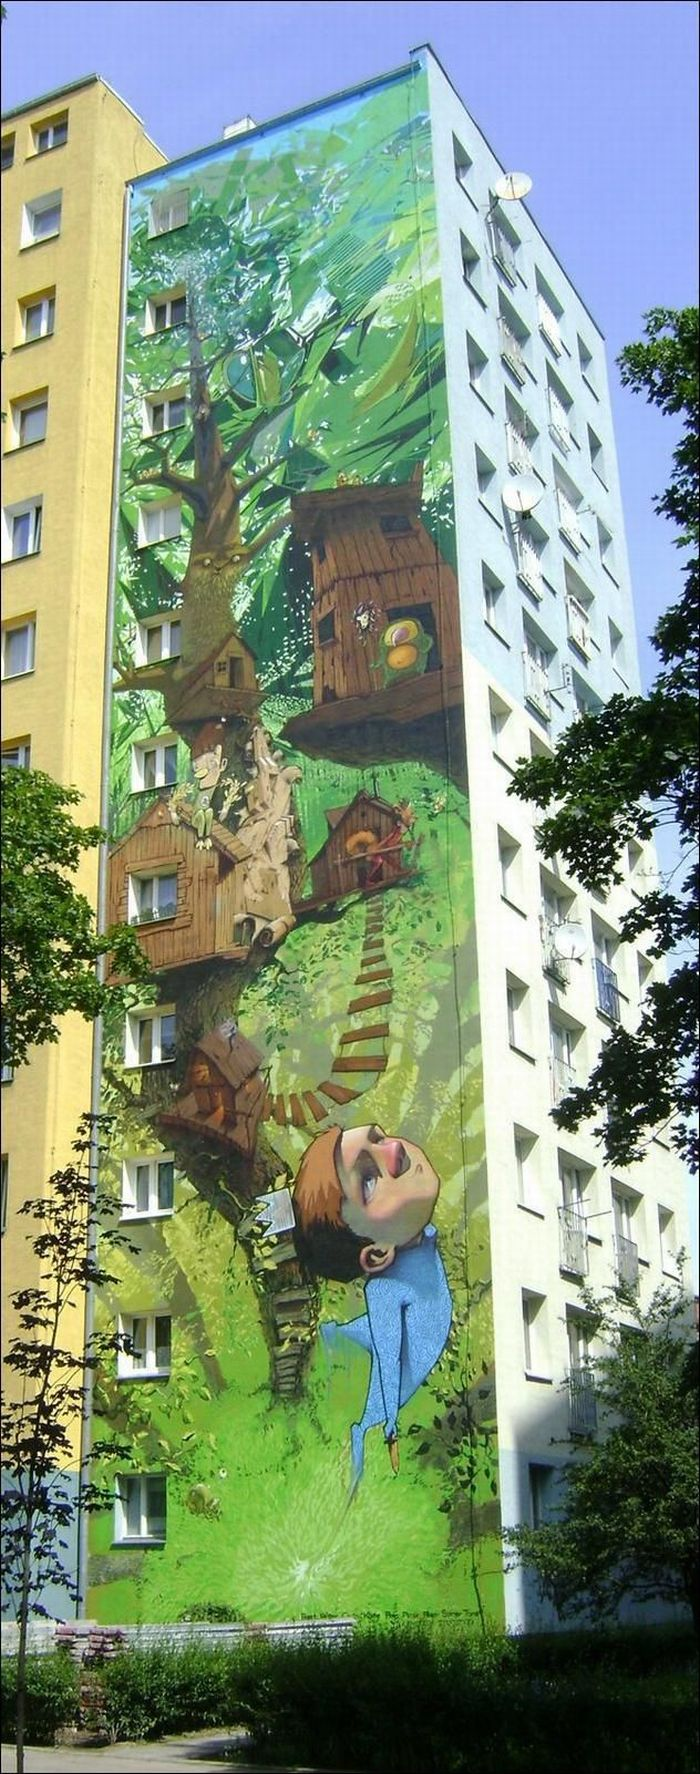 Amazing Wall Painting in Poland (2 pics)